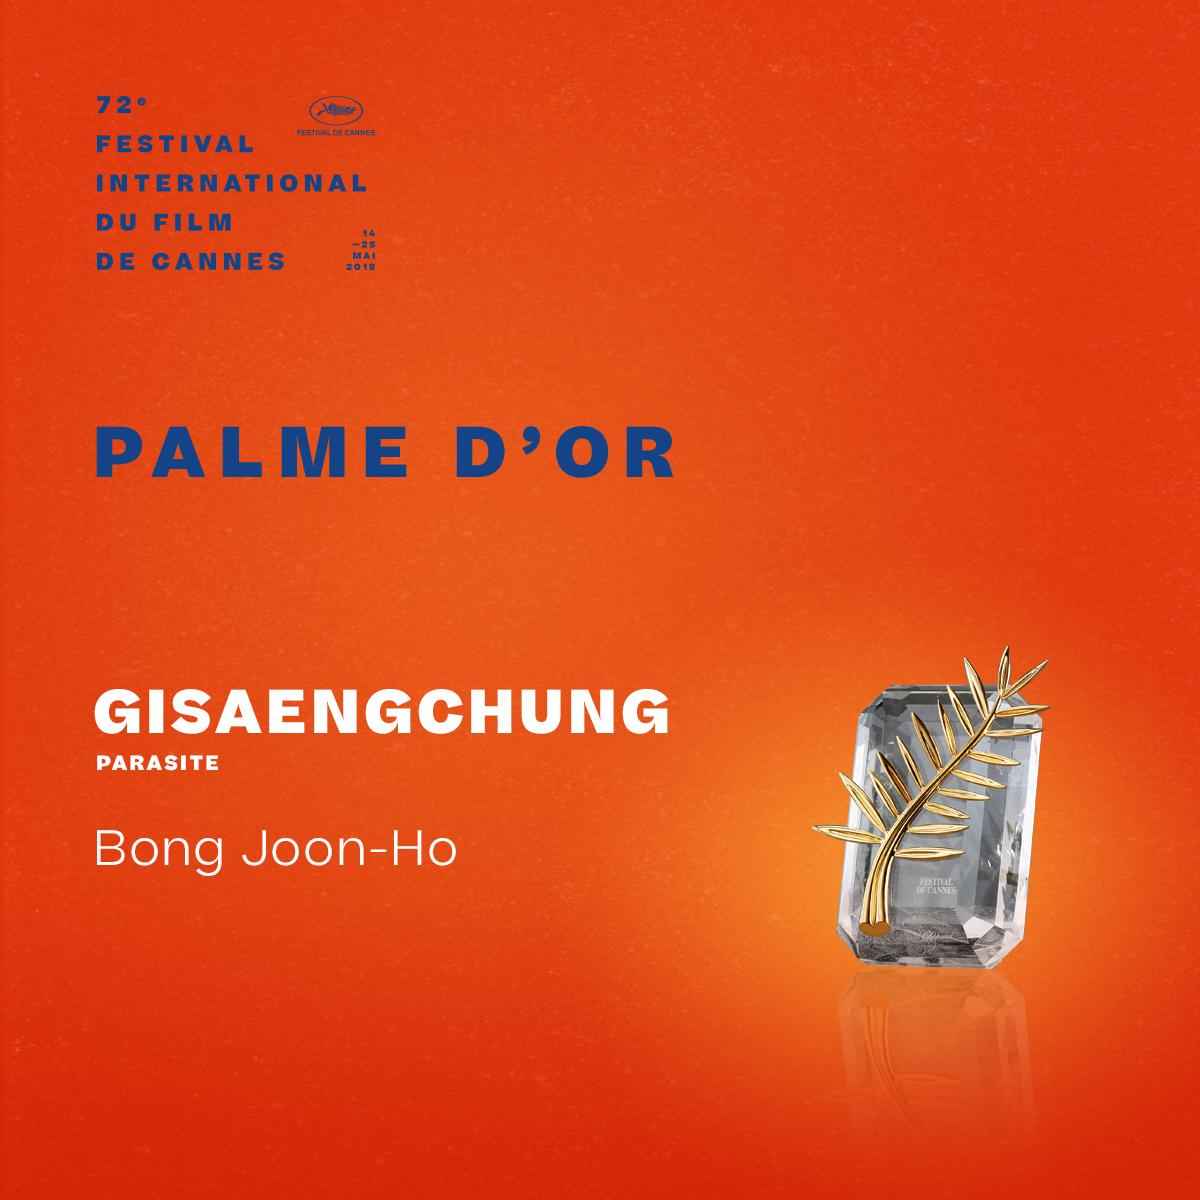 And the Palme d'or winner is…  #Gisaengchung by Bong Joon-Ho ✨ #Cannes2019 #Awards https://t.co/SQ9J1xPpFA